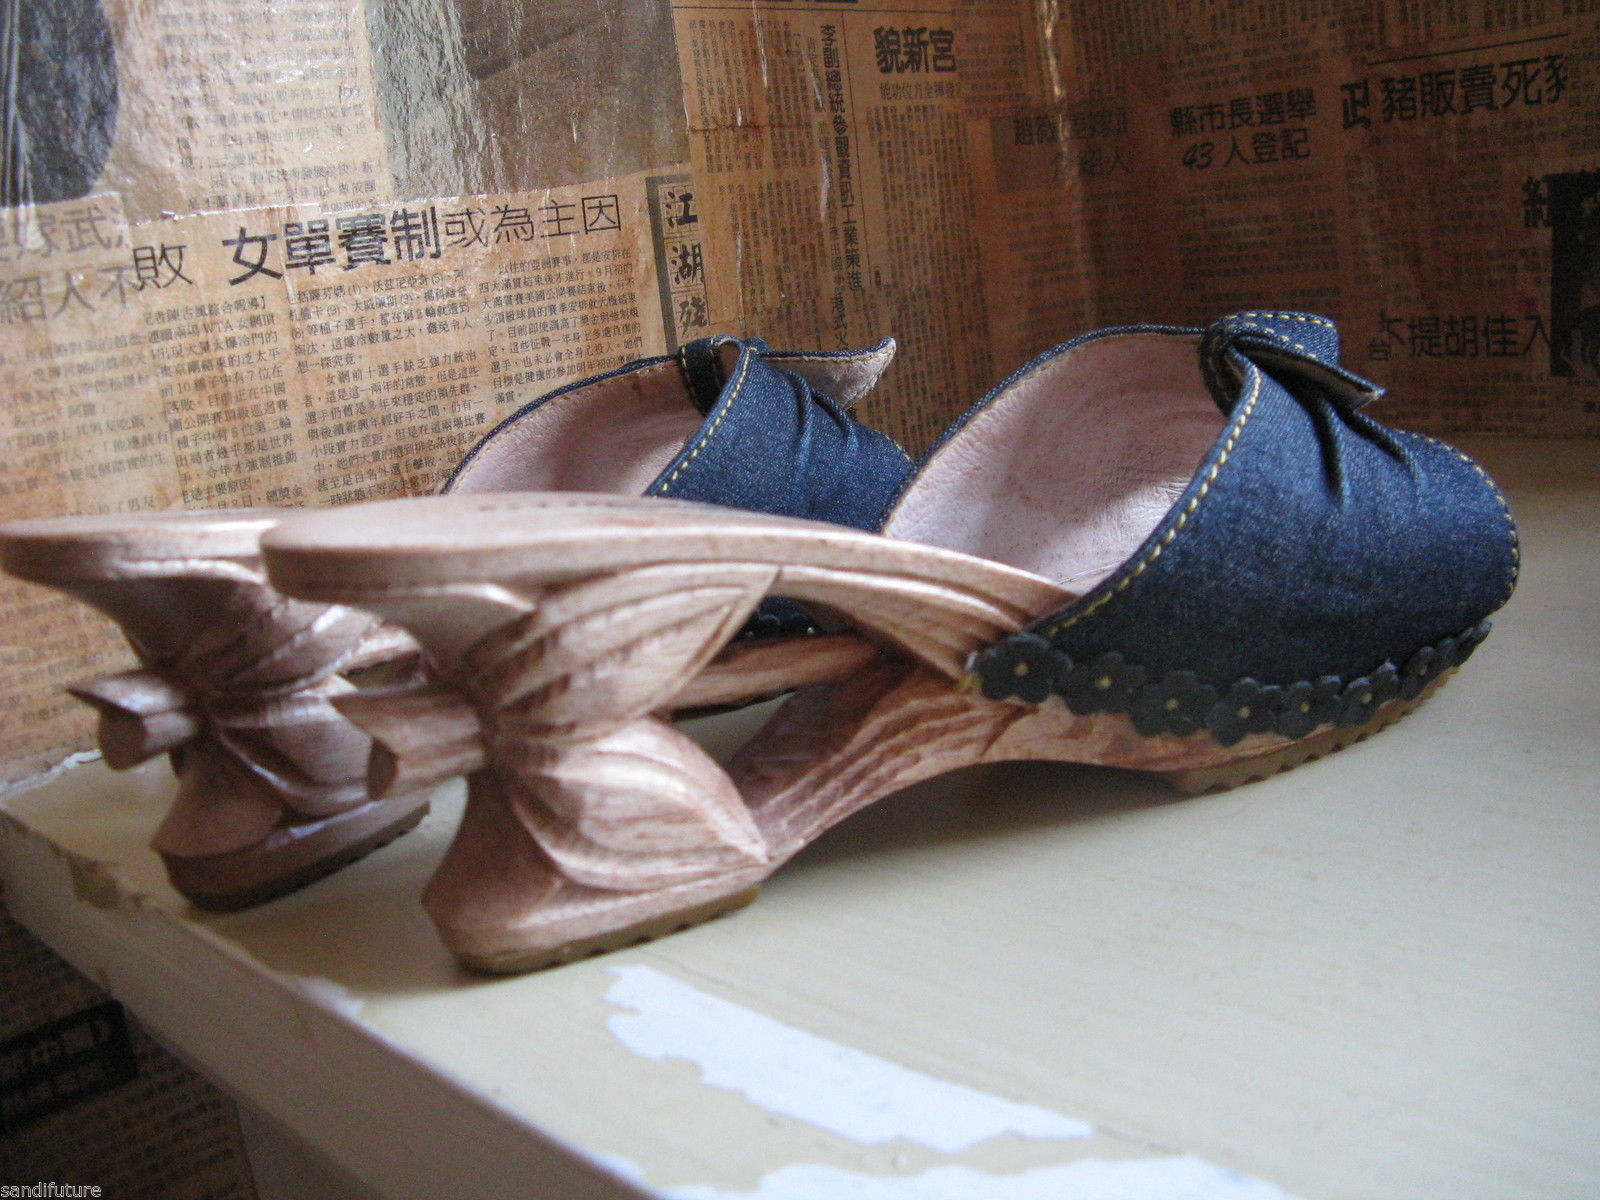 Vintage NWT Betsey Johnson Lucky Lou Tiki carved wooden shoes VLV 7 UK5.5 37 image 3